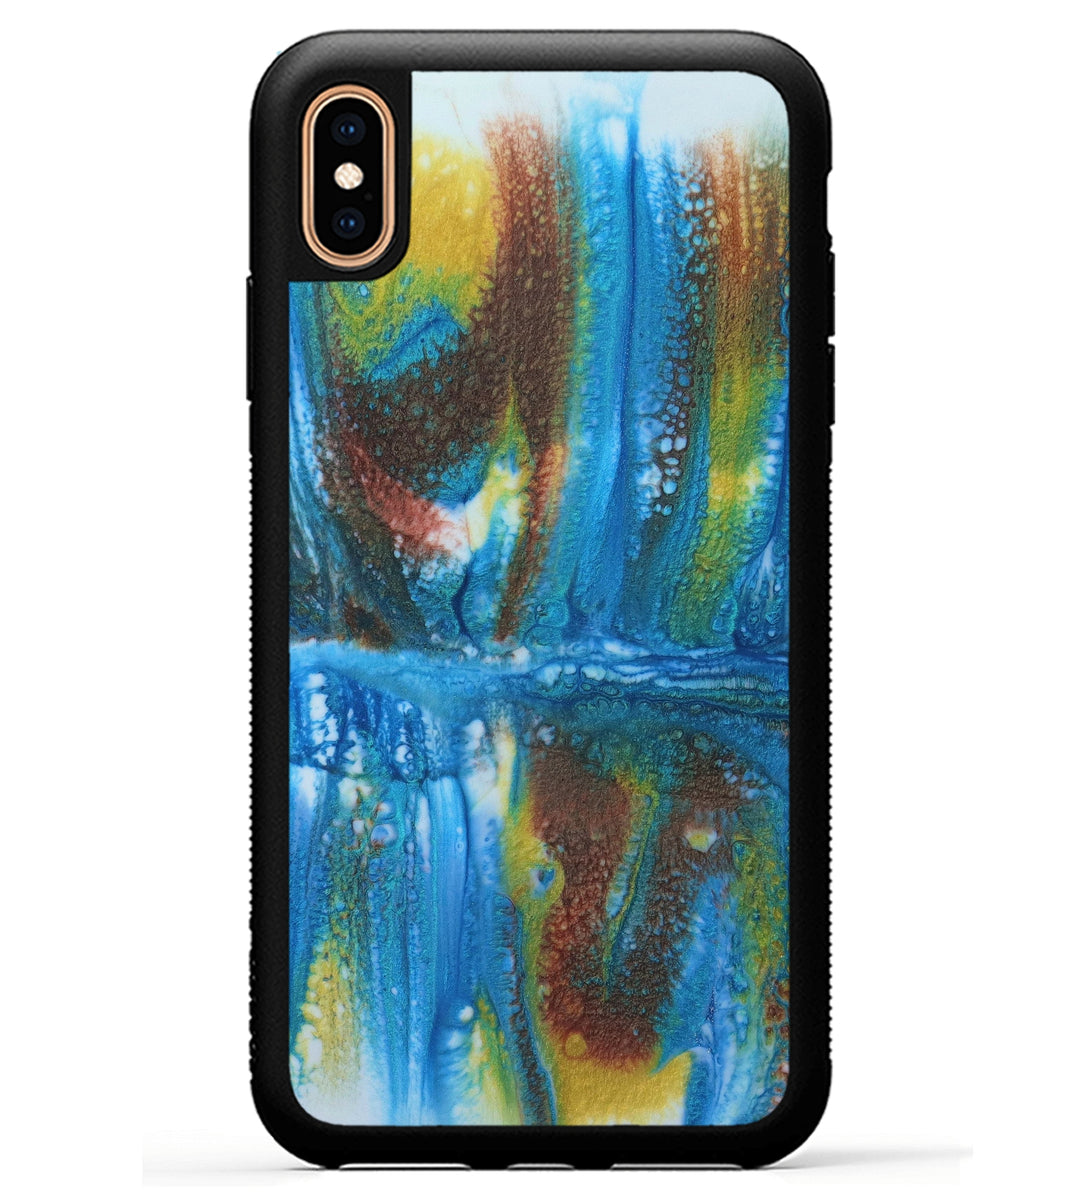 iPhone Xs Max Case - Rejeanne (Teal & Gold, 345934)